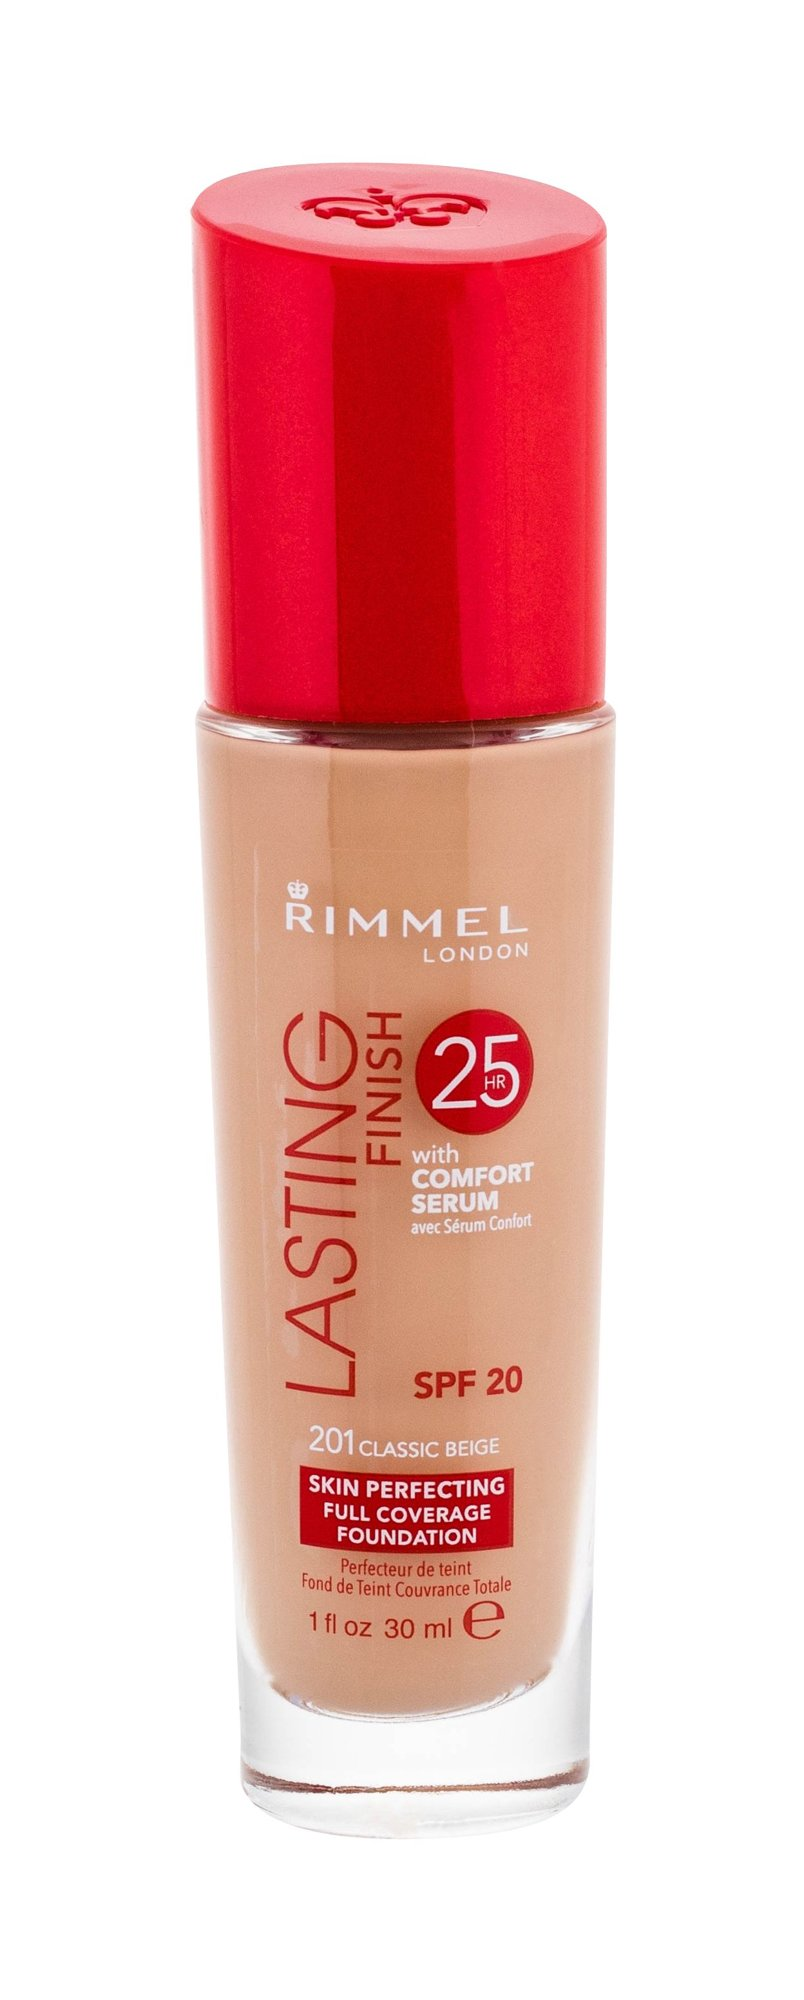 Rimmel London Lasting Finish Cosmetic 30ml 201 Classic Beige